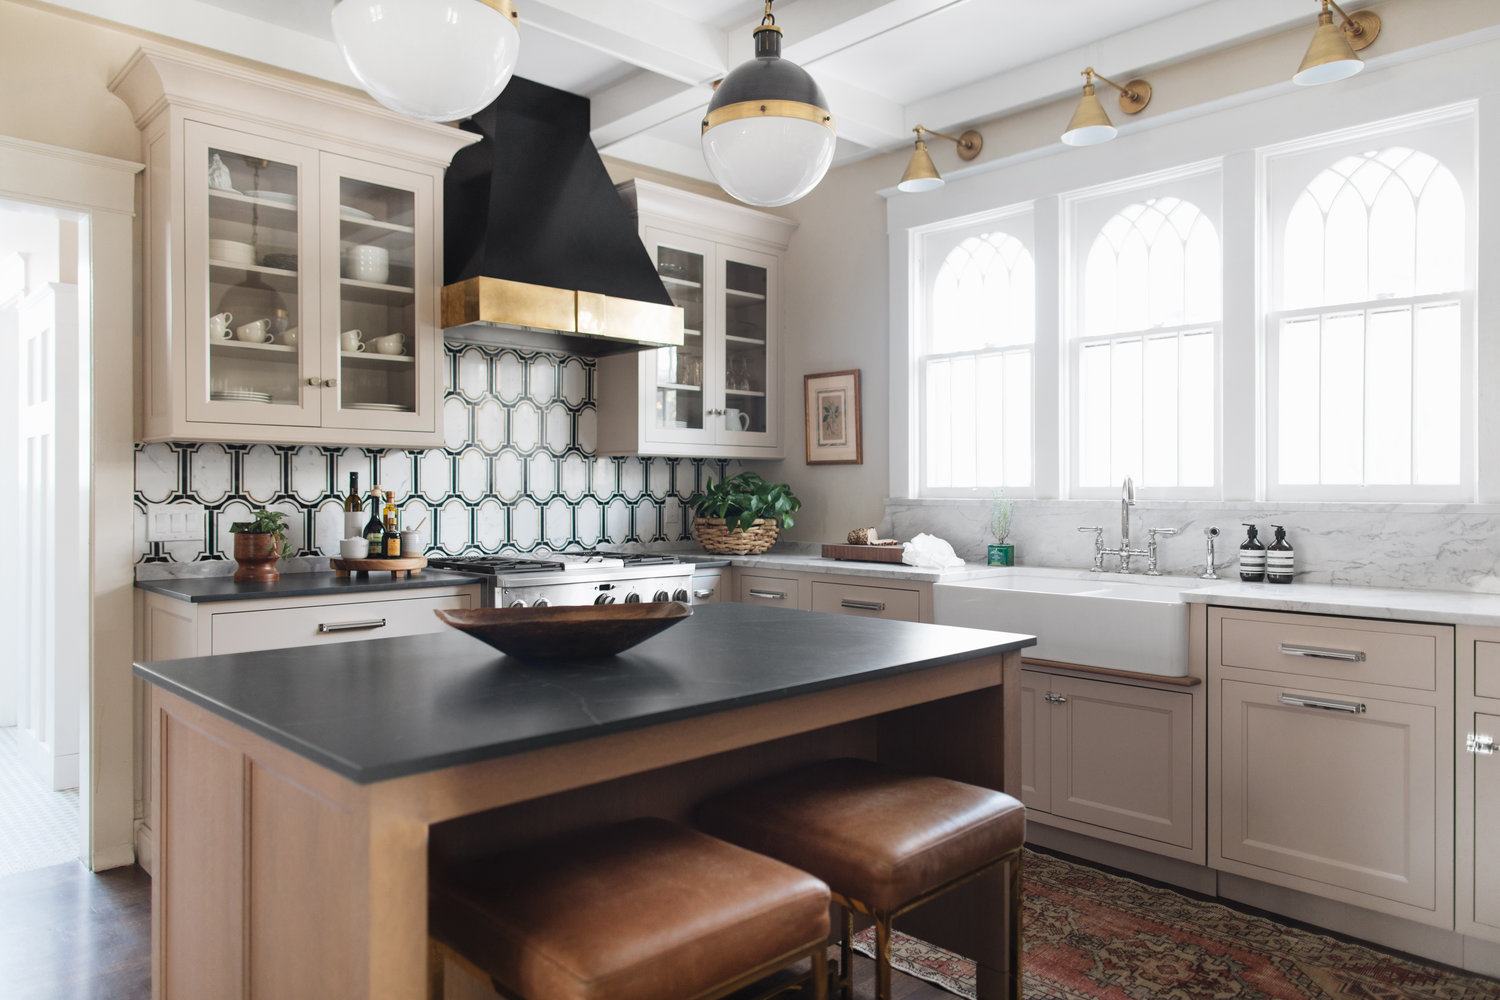 20 Bold Kitchens Backsplashes That Make A Statement House Home